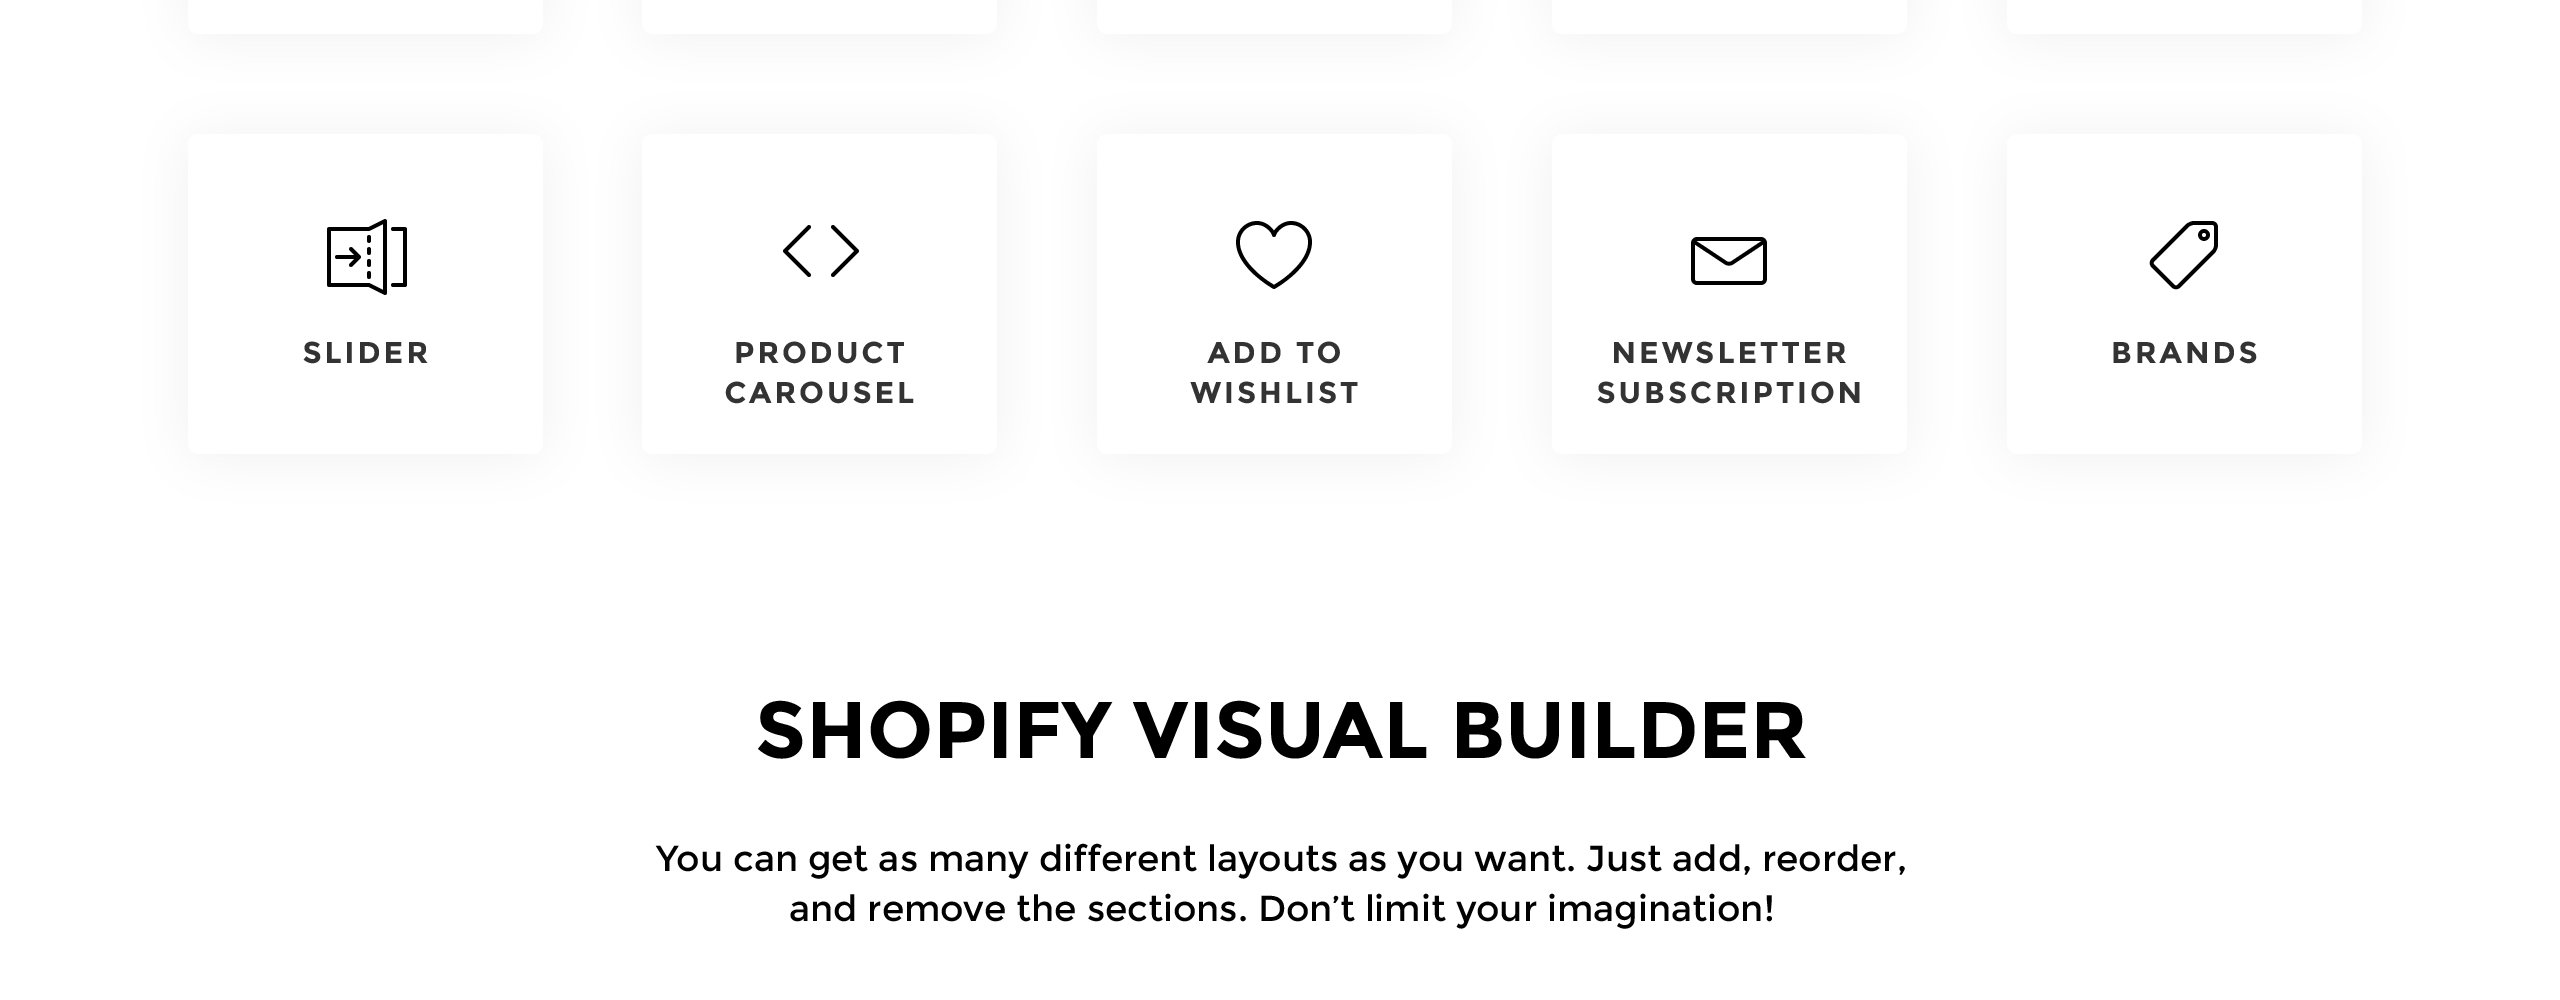 Website Design Template 71738 - shopify